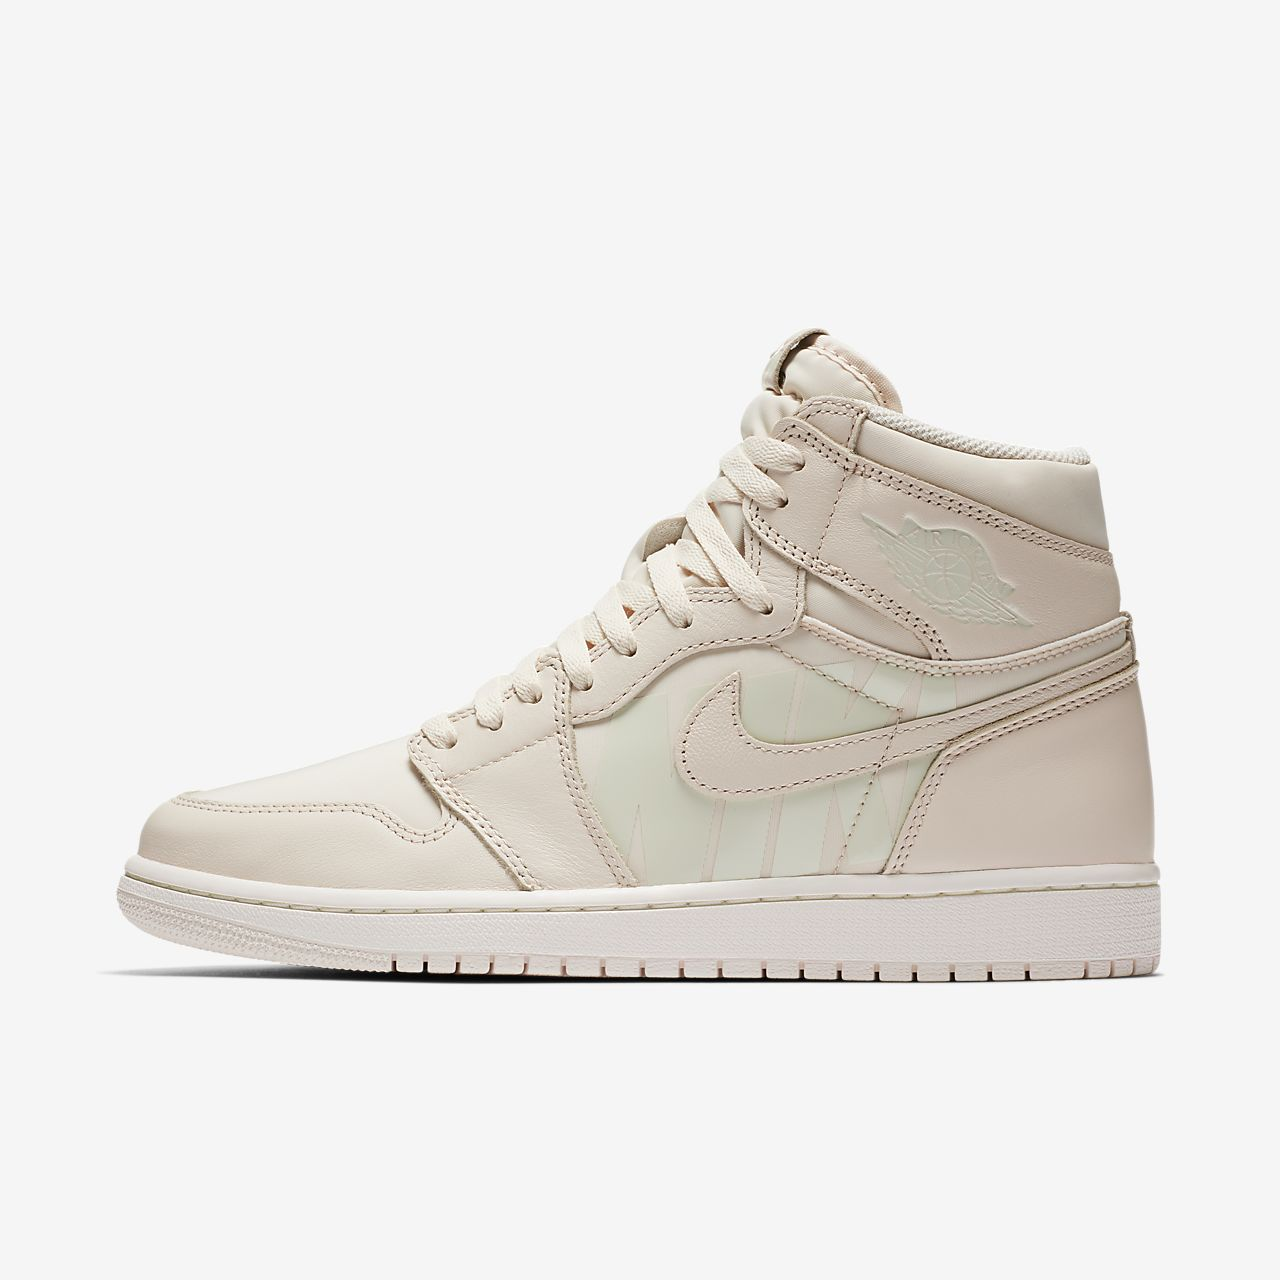 new styles 5a824 f27ee ... Air Jordan 1 Retro High OG Shoe